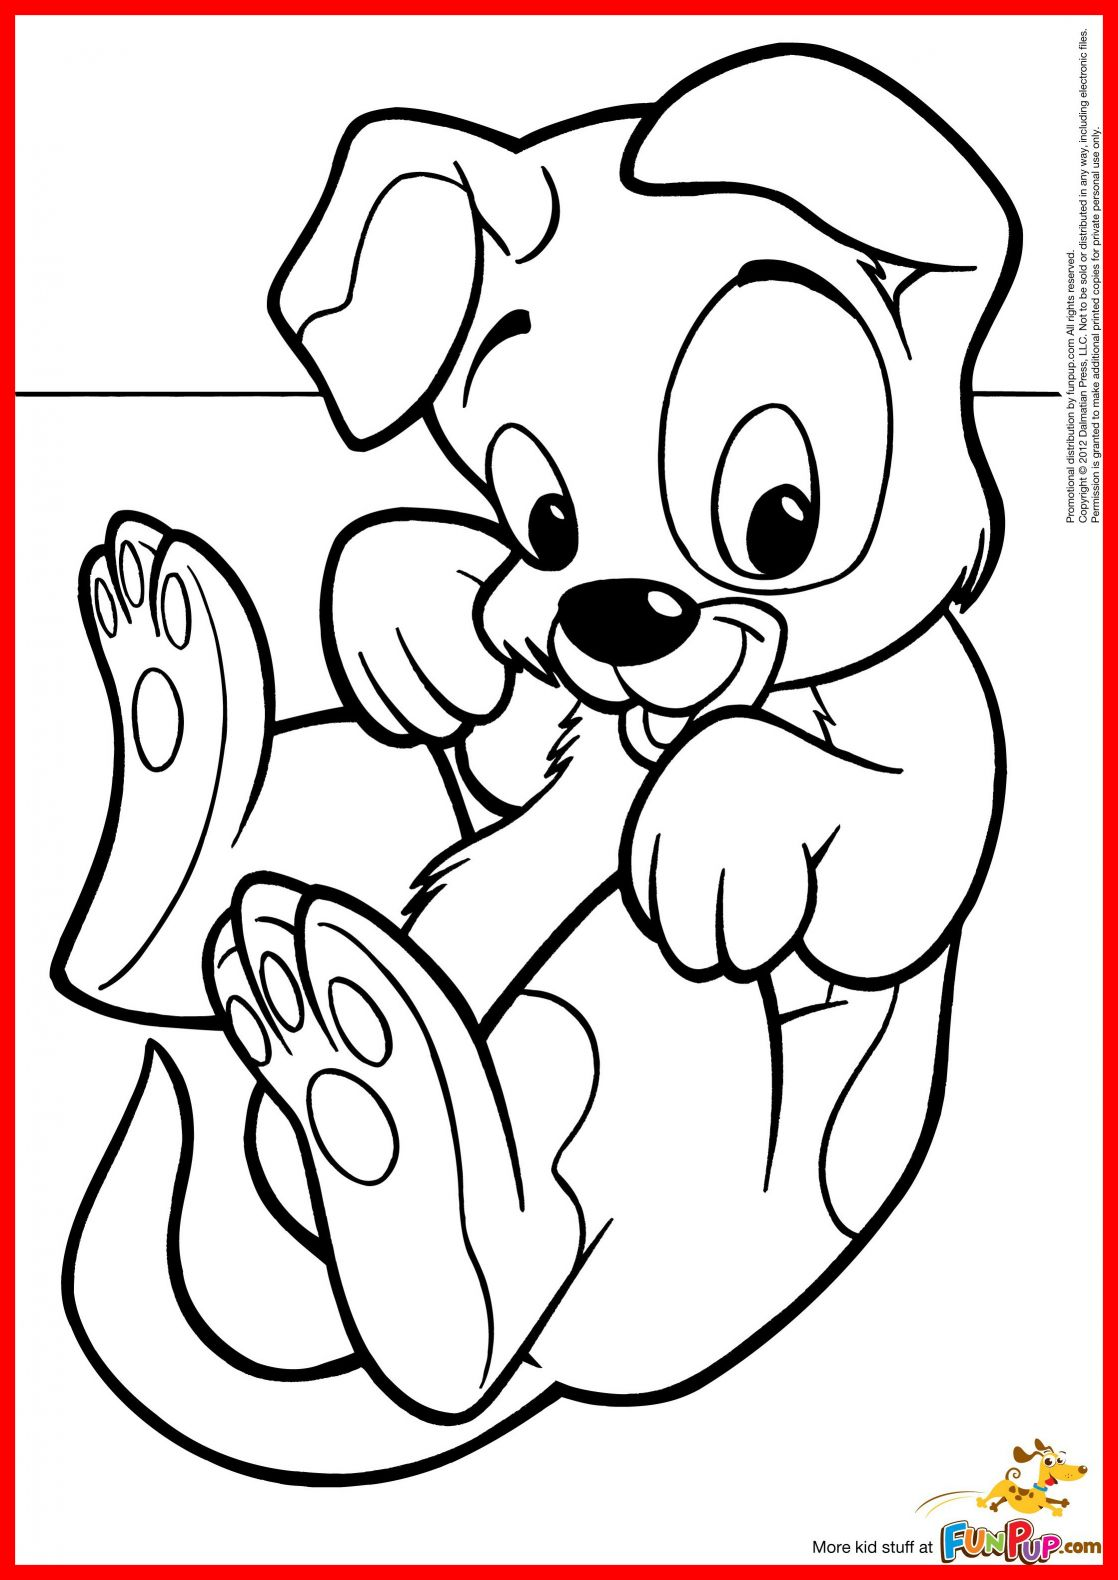 1118x1580 Astonishing Zodiac Sign Coloring Pages For Kids Pics Of Basset